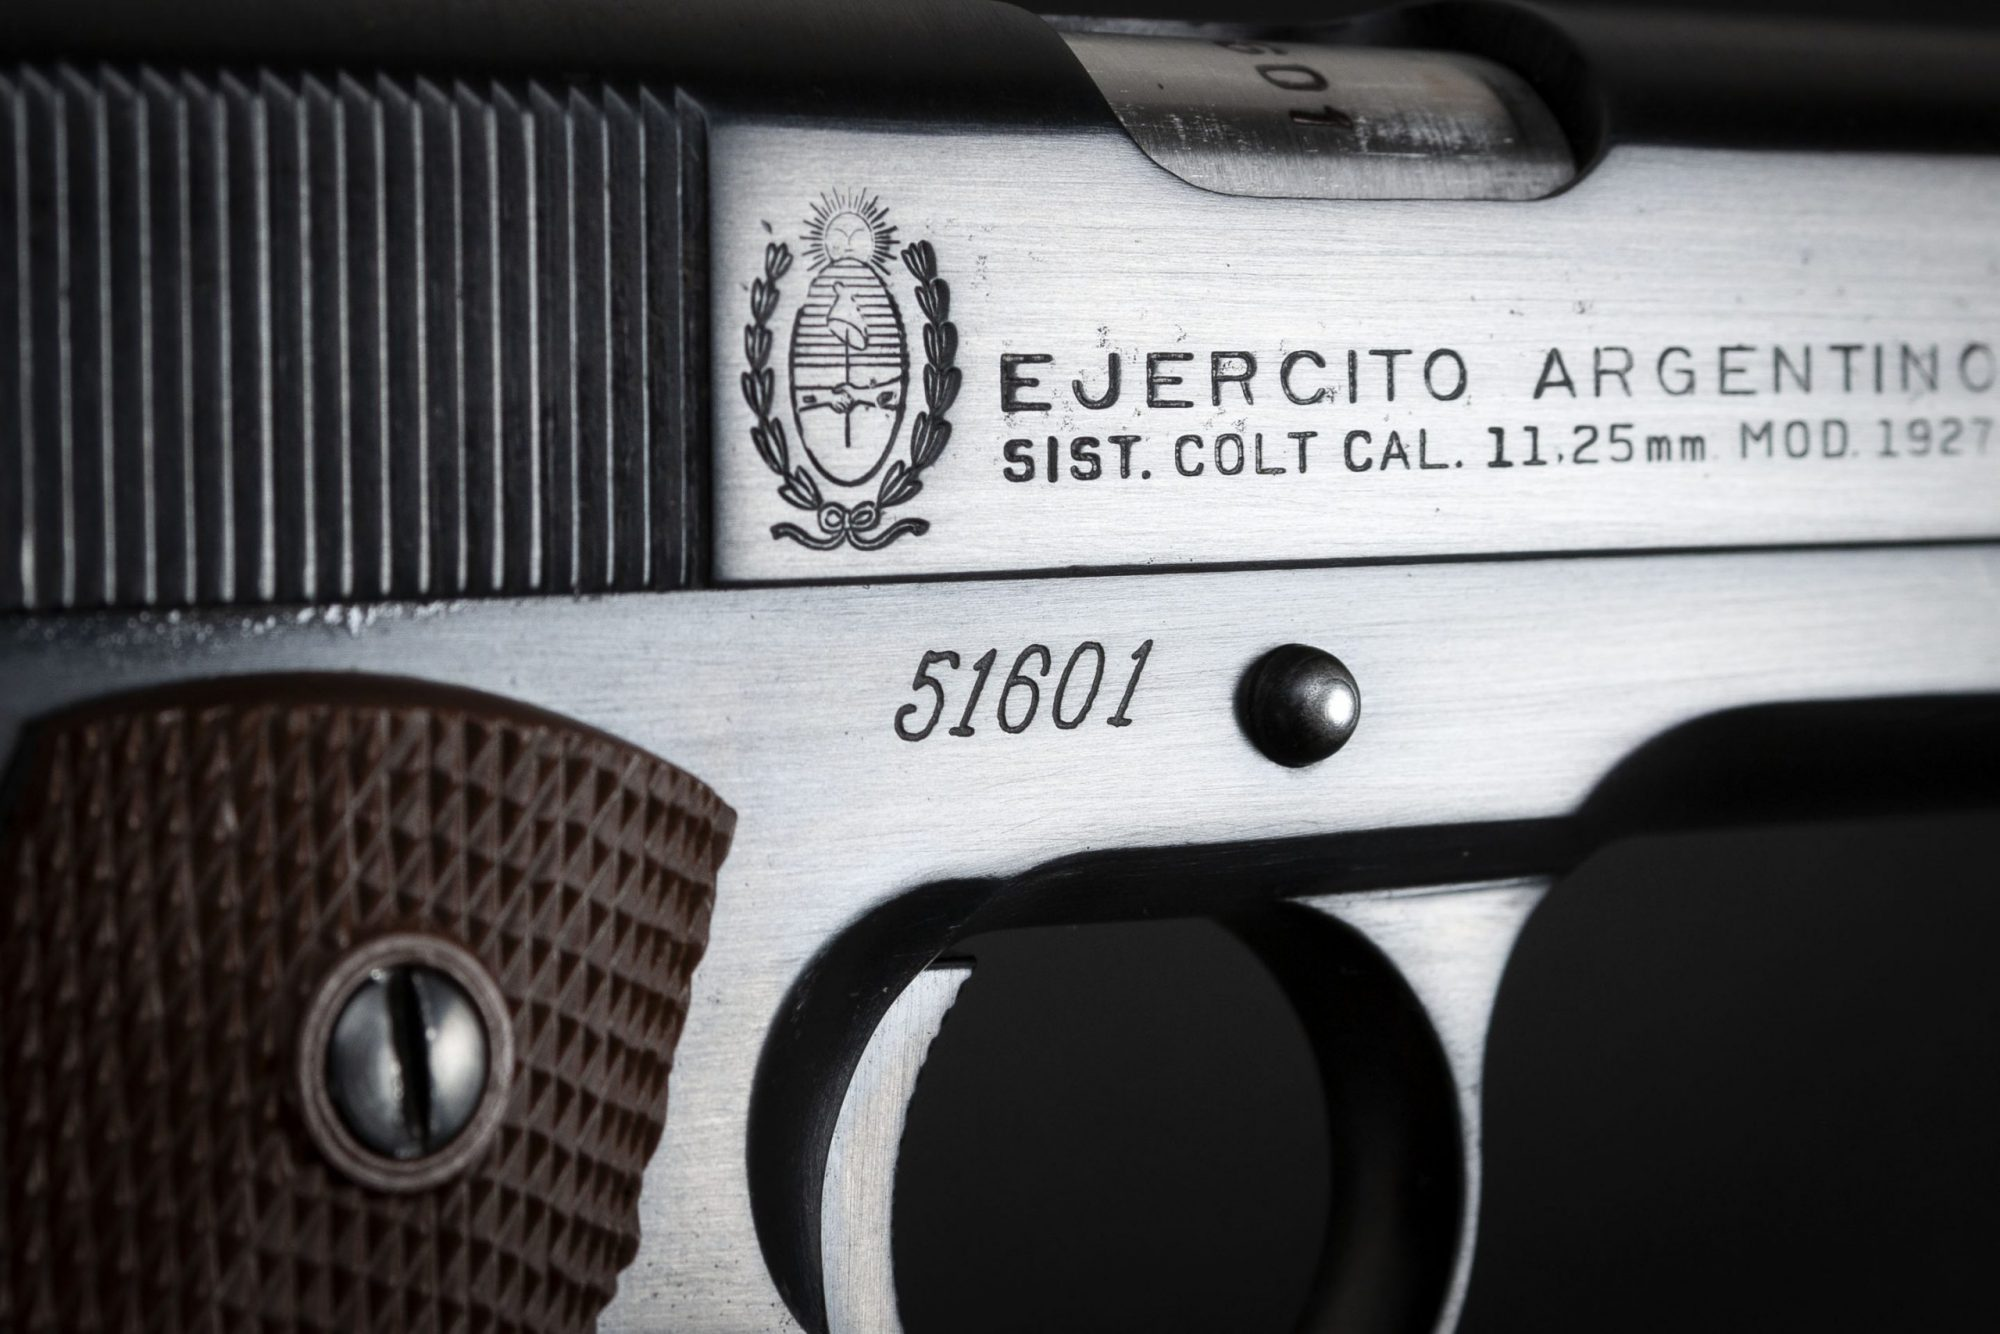 Photo of a Ejercito Argentino Sistema Colt Model 1927 in 11.25mm, for sale by Turnbull Restoration of Bloomfield, NY